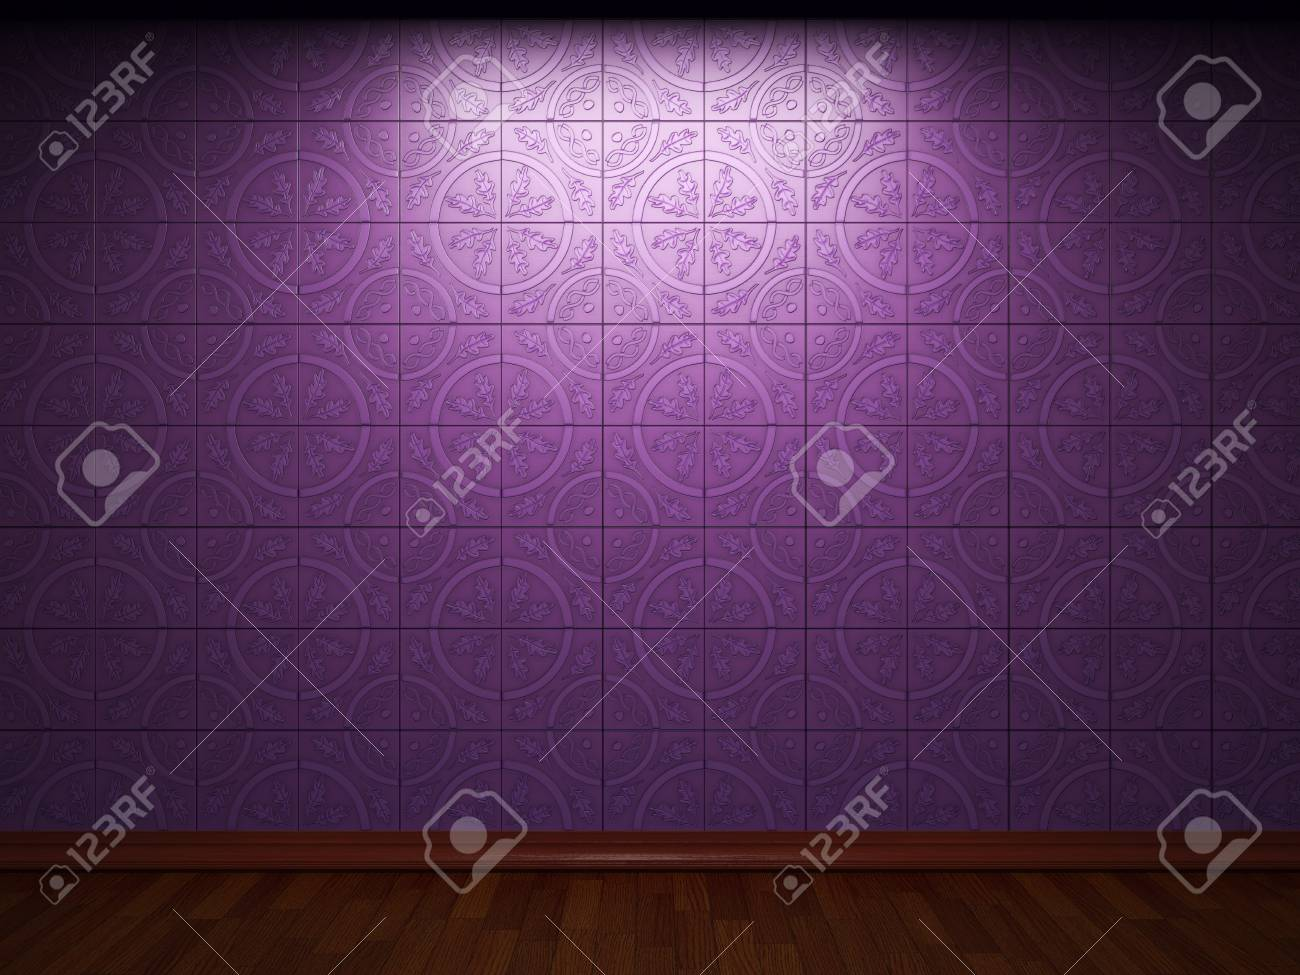 illuminated tile wall made in 3D graphics Stock Photo - 9366748